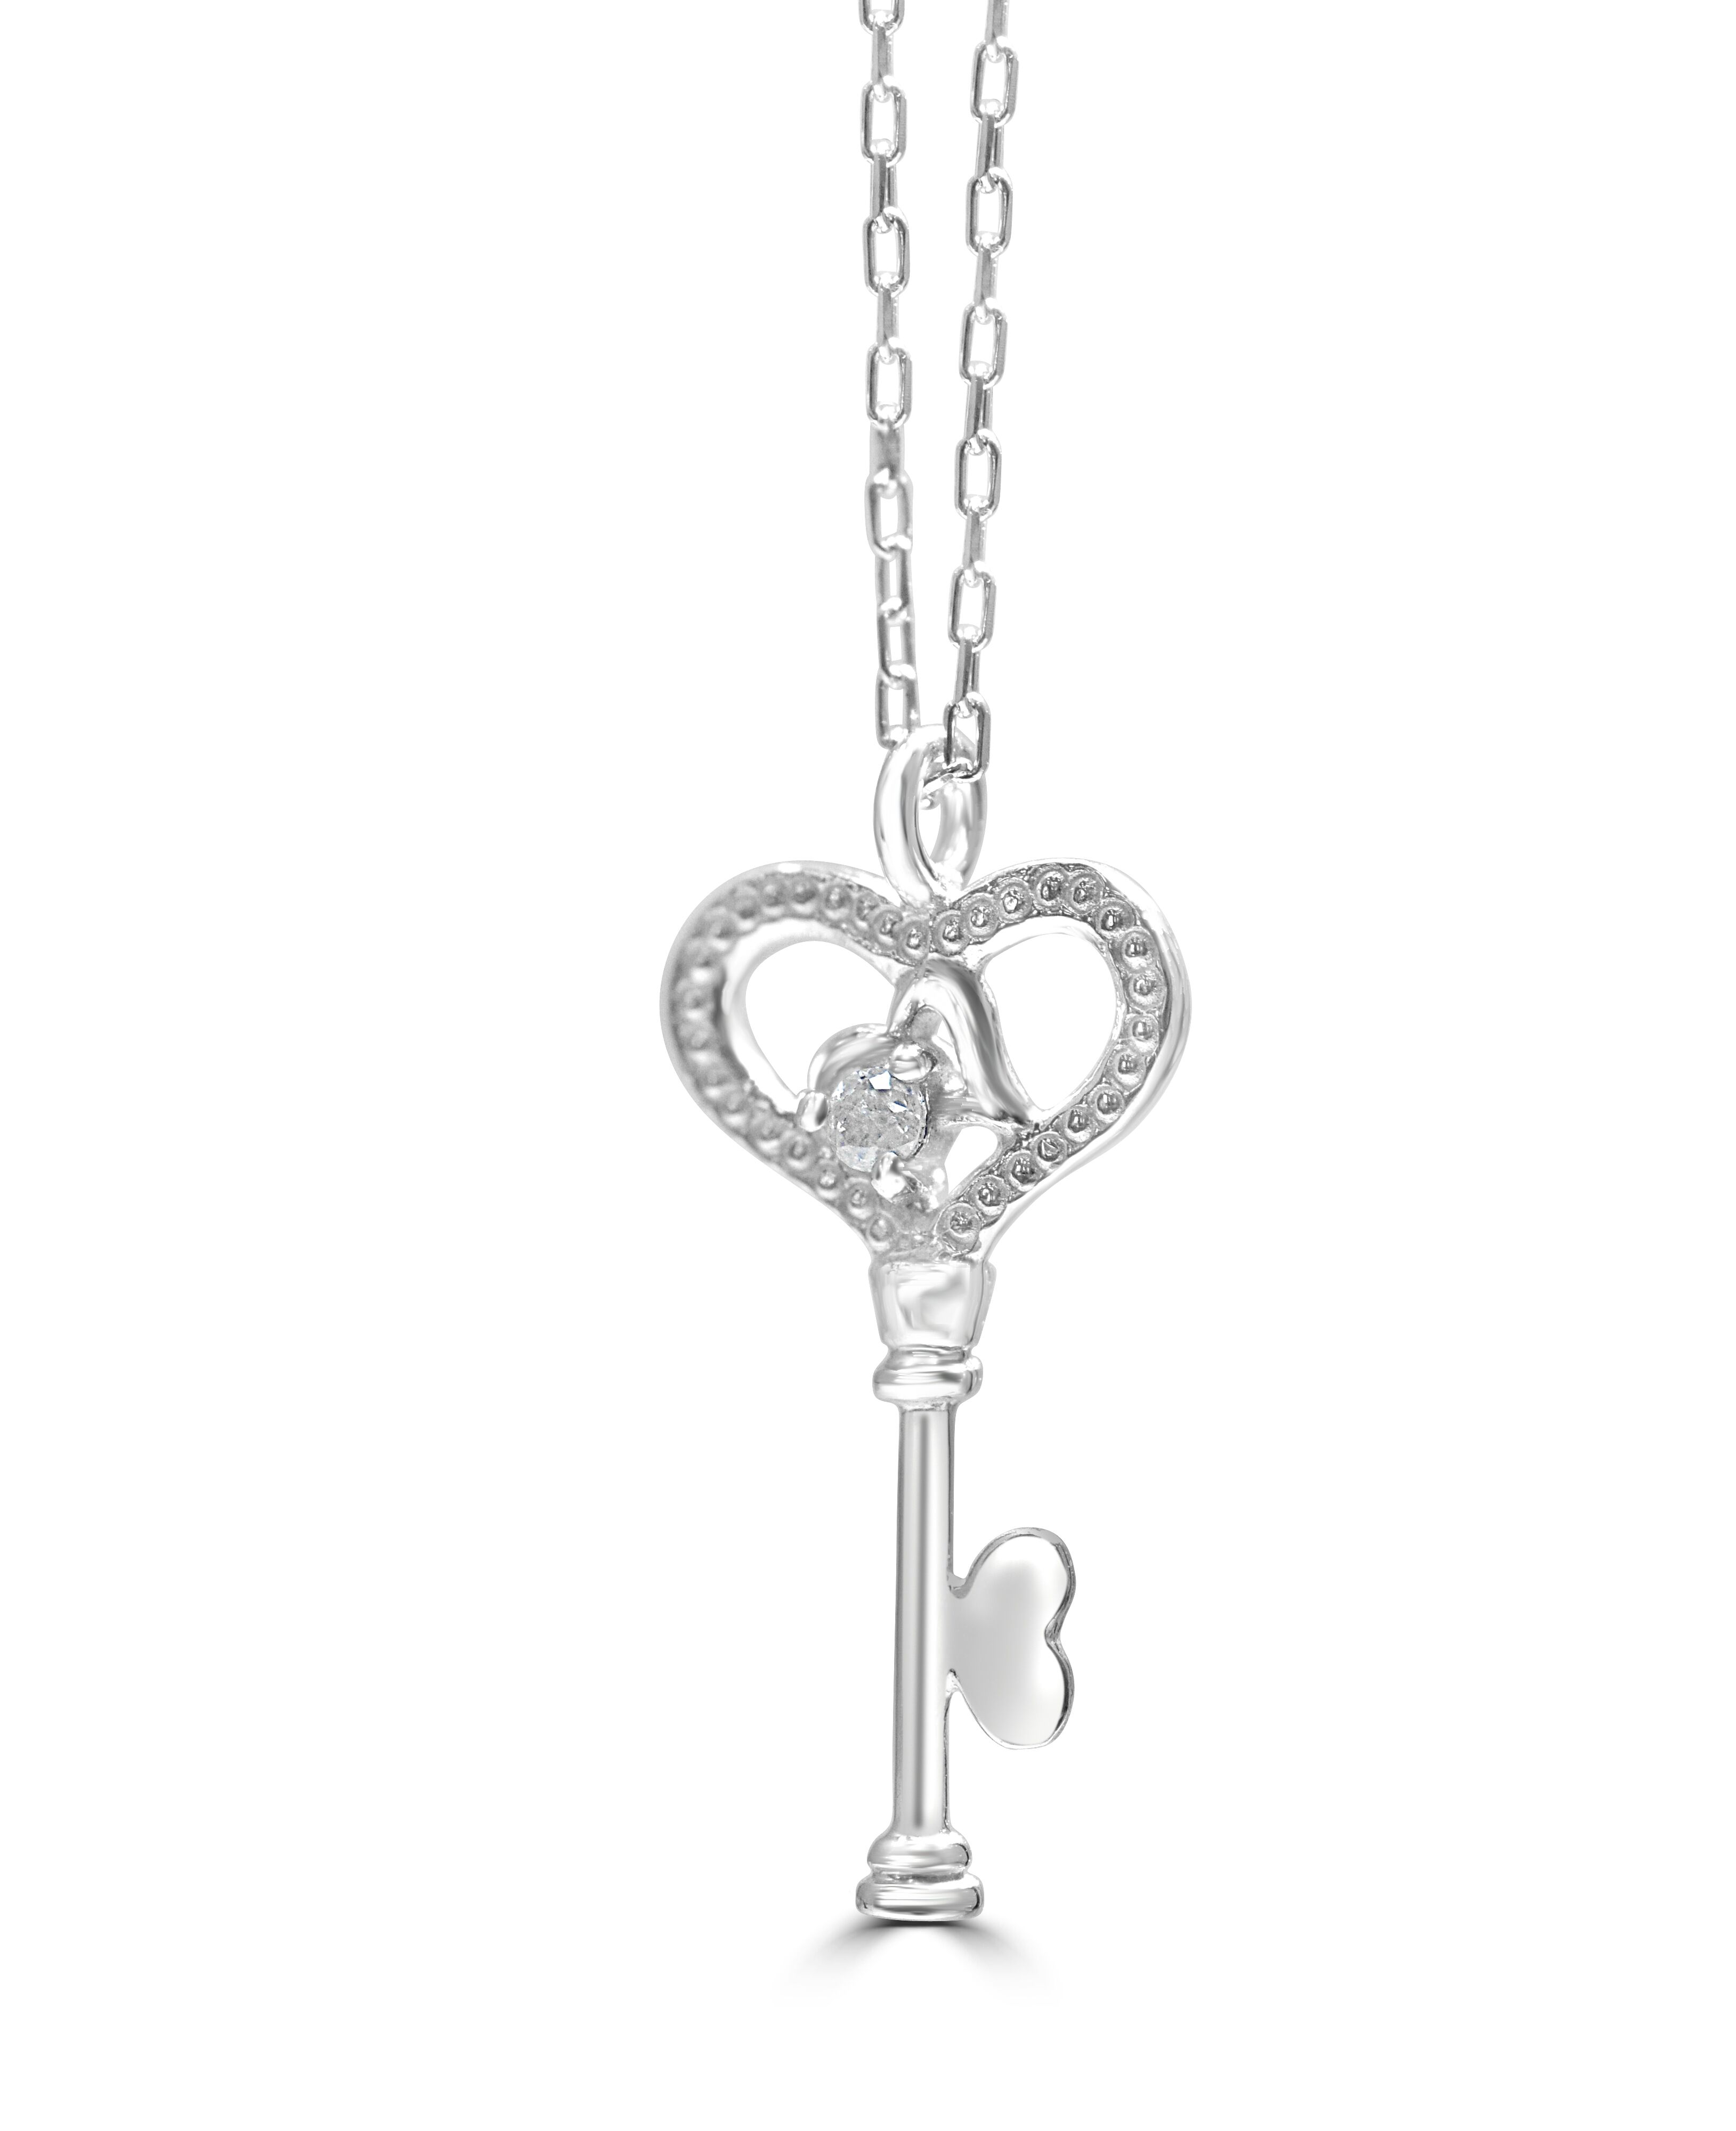 Diamond Pendant Key in 9ct White Gold With 16 Inch Chain RRP £250